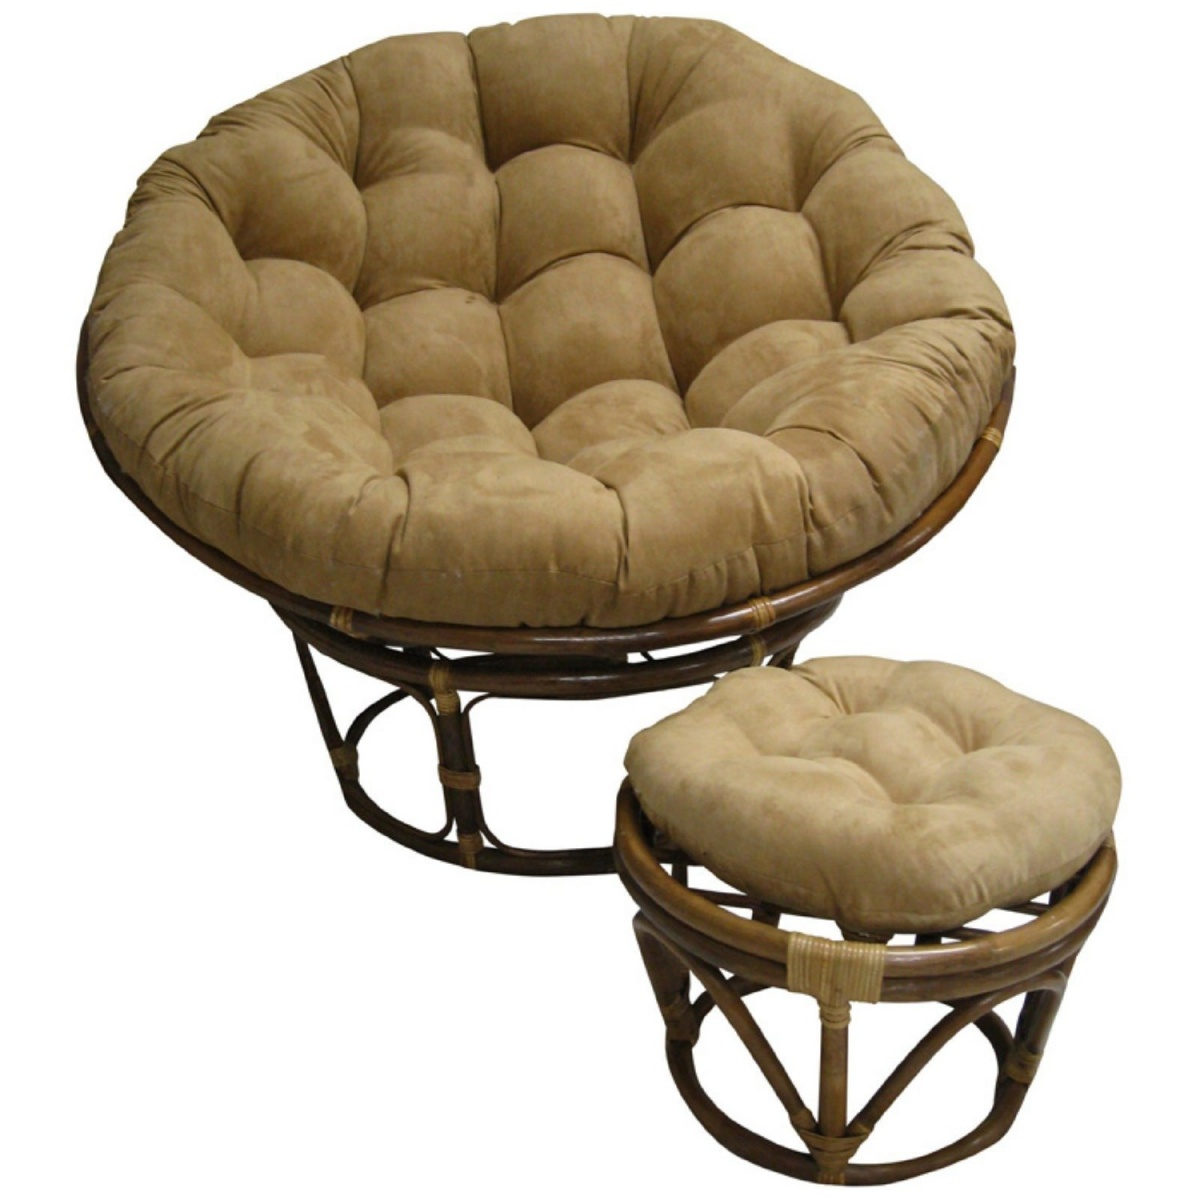 Peir One Furniture | Pier One Wicker Furniture | Patio Furniture Pier 1  Imports